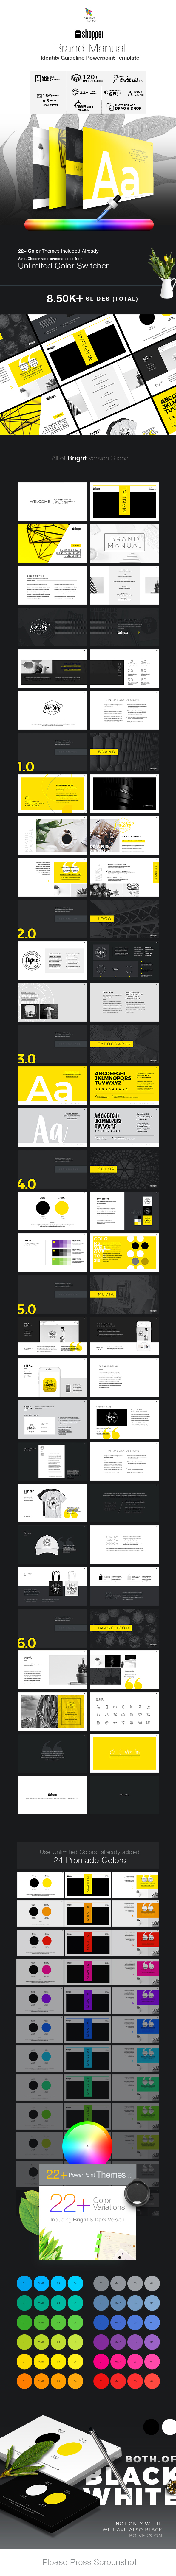 Brand Manual PowerPoint - Business PowerPoint Templates